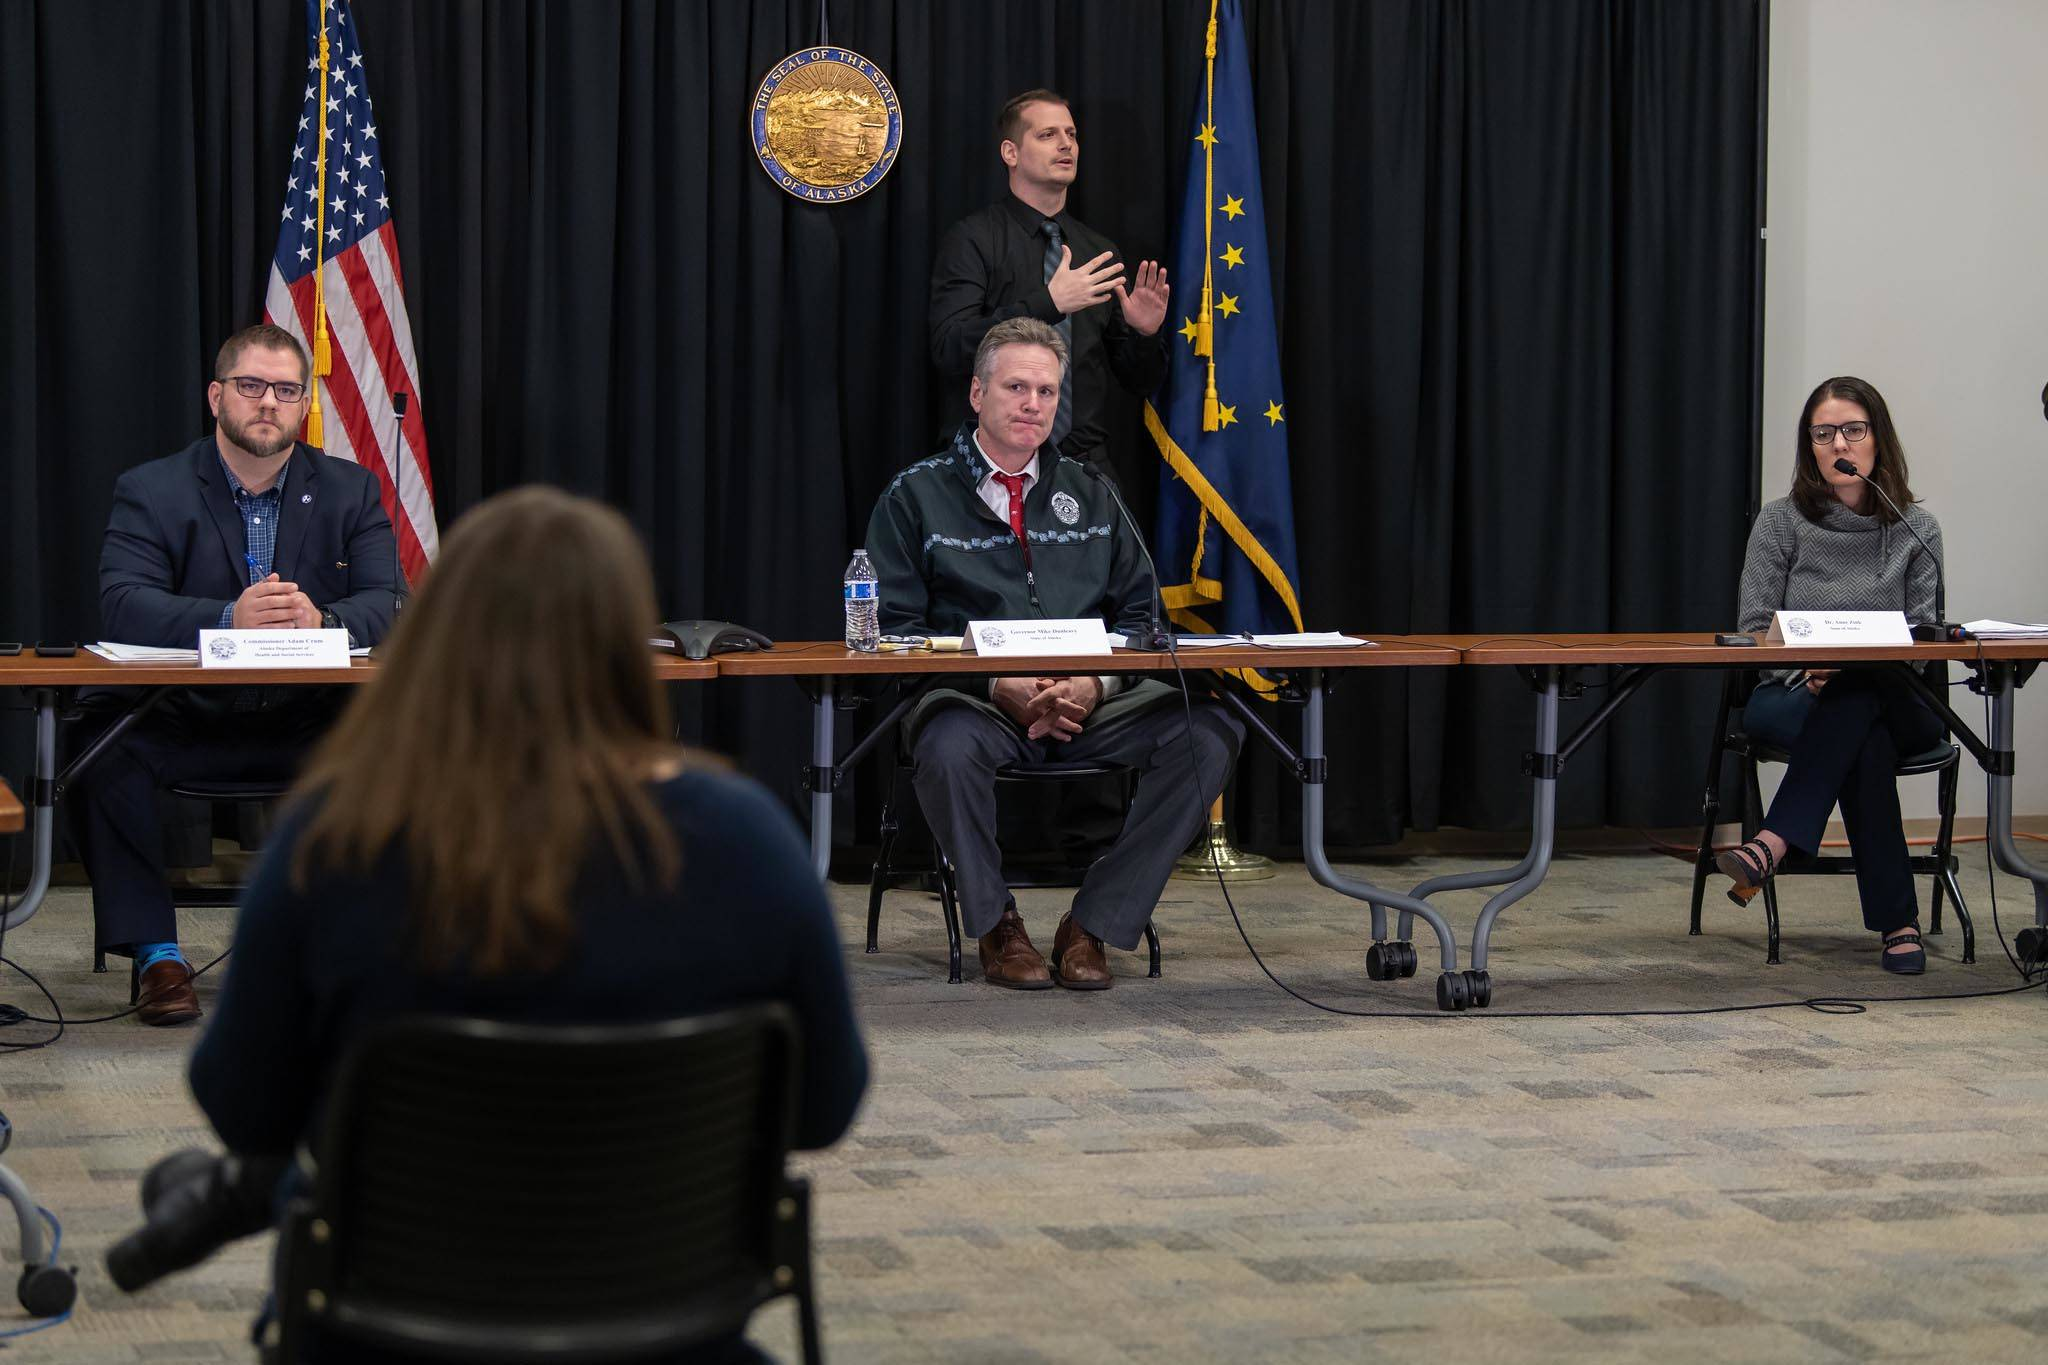 From left: DHSS Commissioner Adam Crum, Gov. Mike Dunleavy, Chief Medical Officer Dr. Anne Zink participate in a press conference on the COVID-19 pandemic on Wednesday, March 25, 2020. (Photo courtesy Office of Gov. Mike Dunleavy)